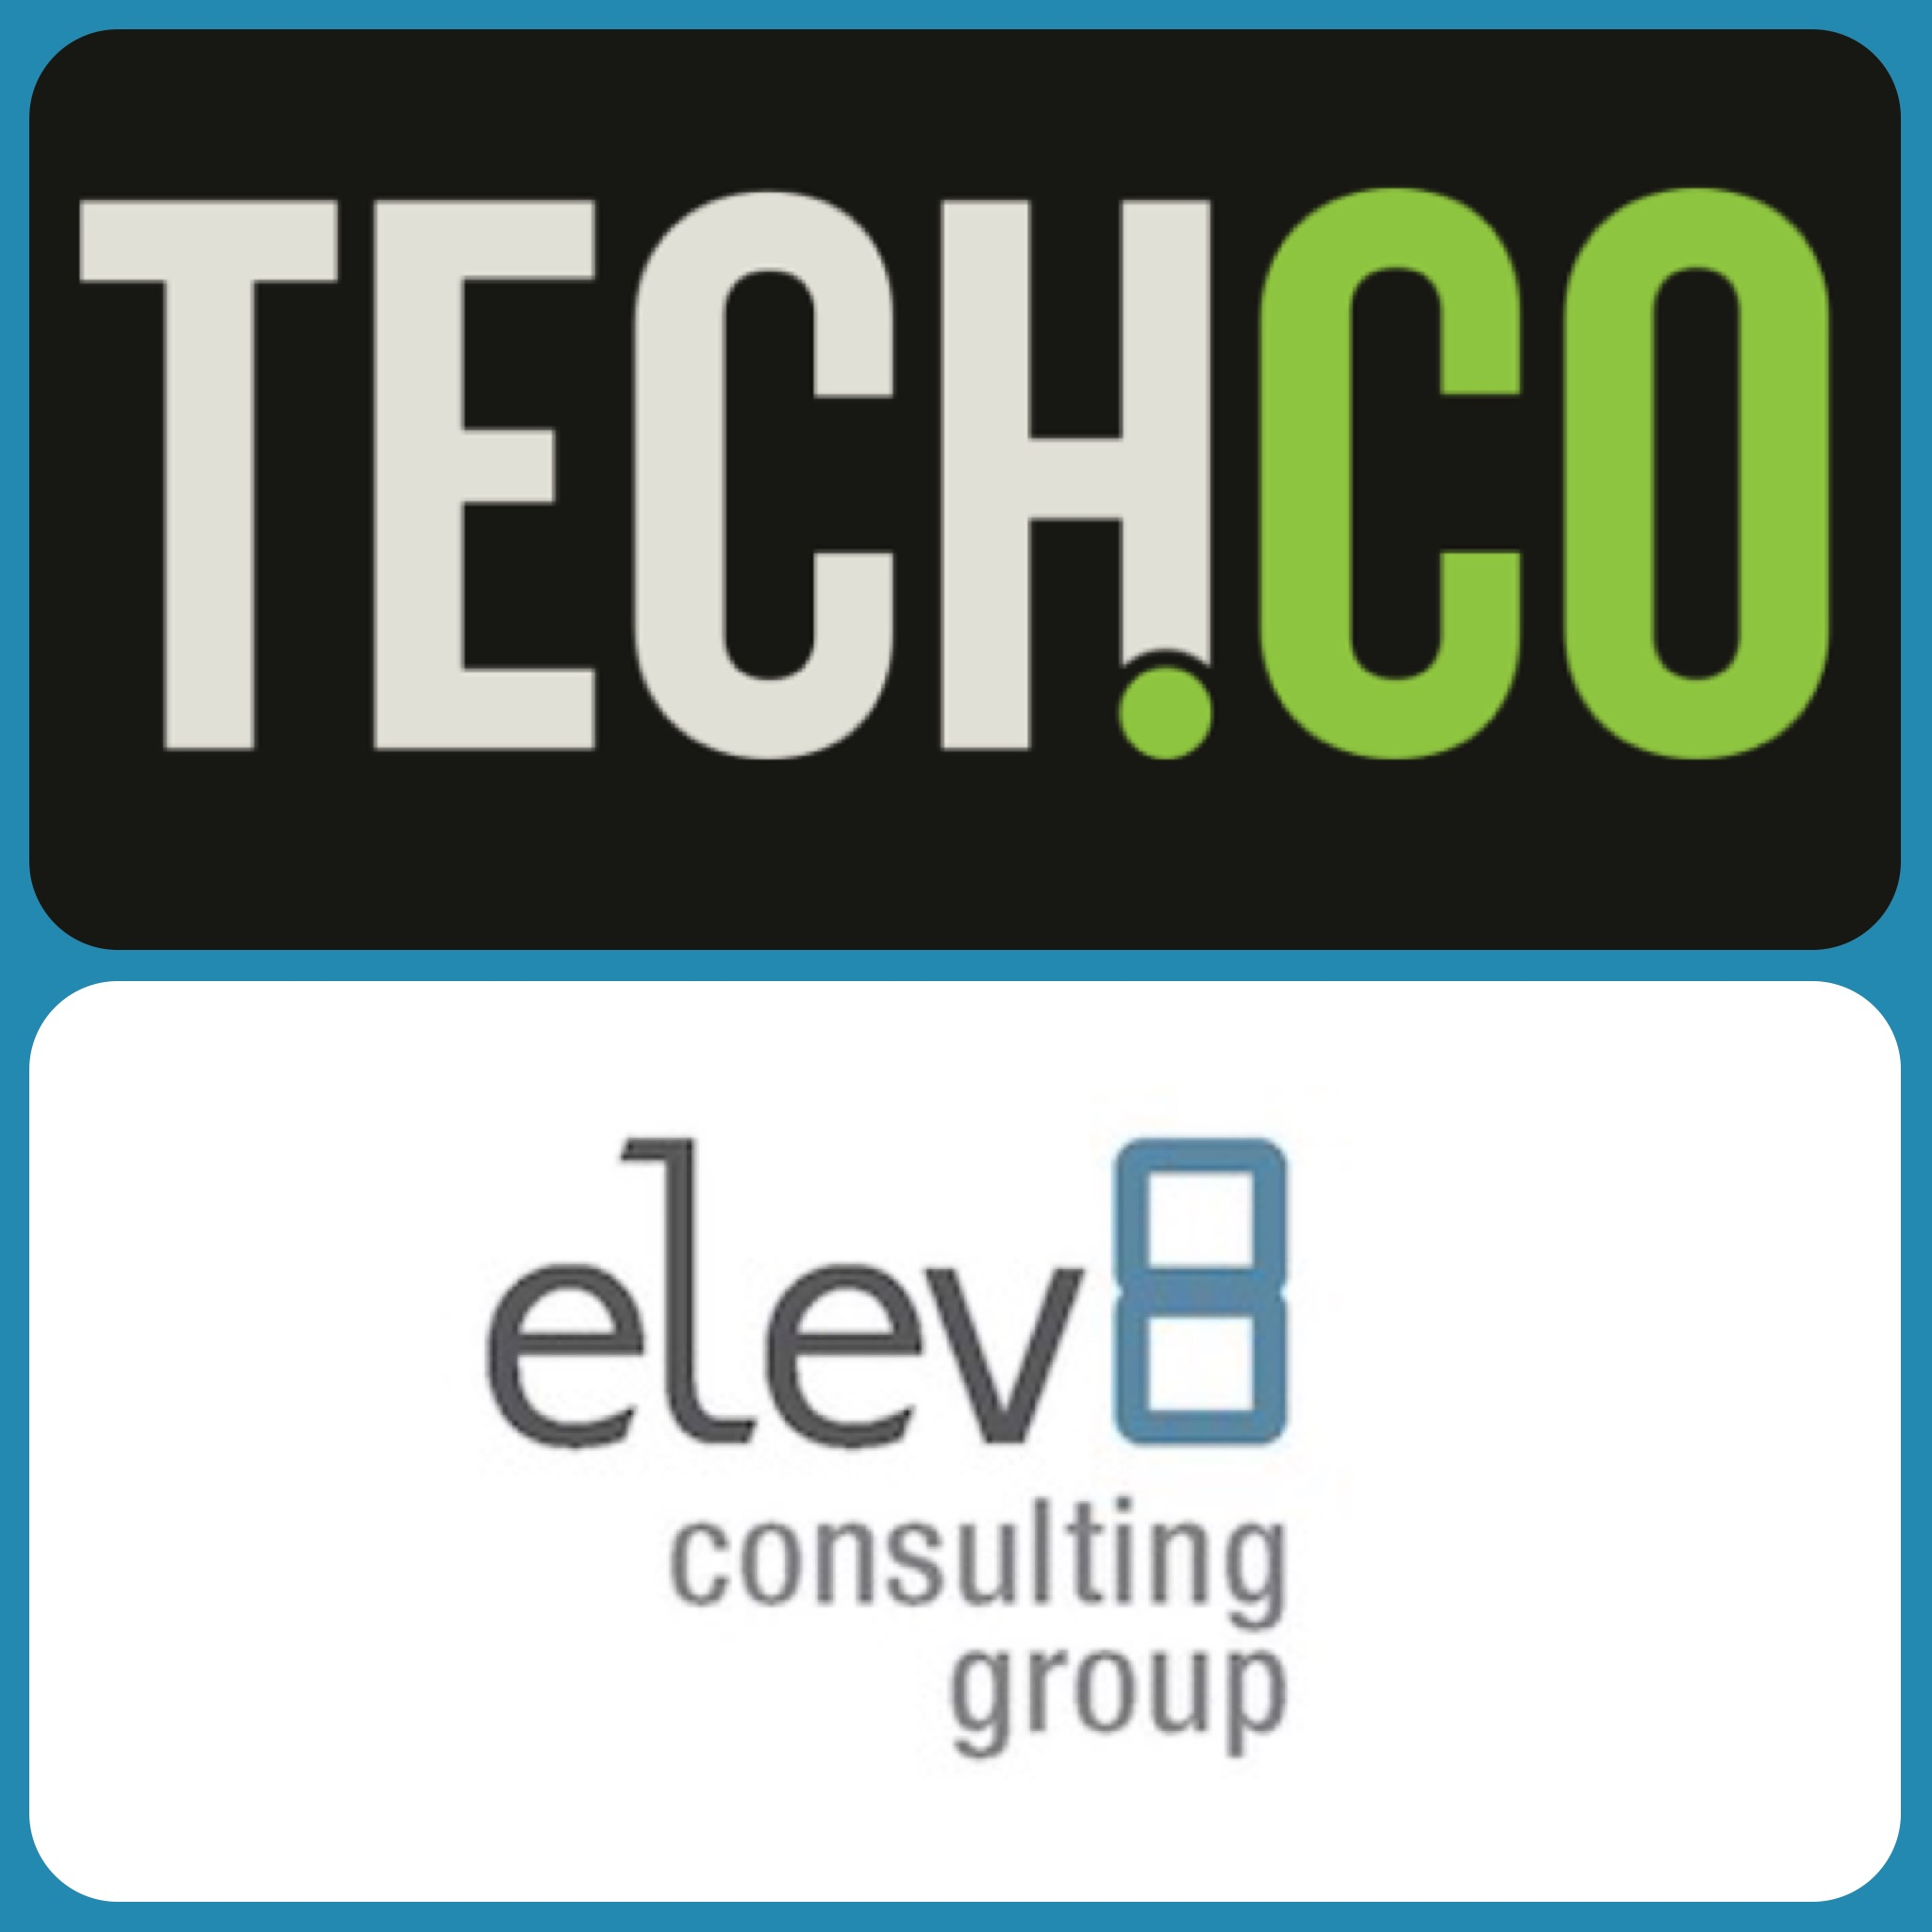 TechCo features Elev8 Consulting Group founder Angela Delmedico